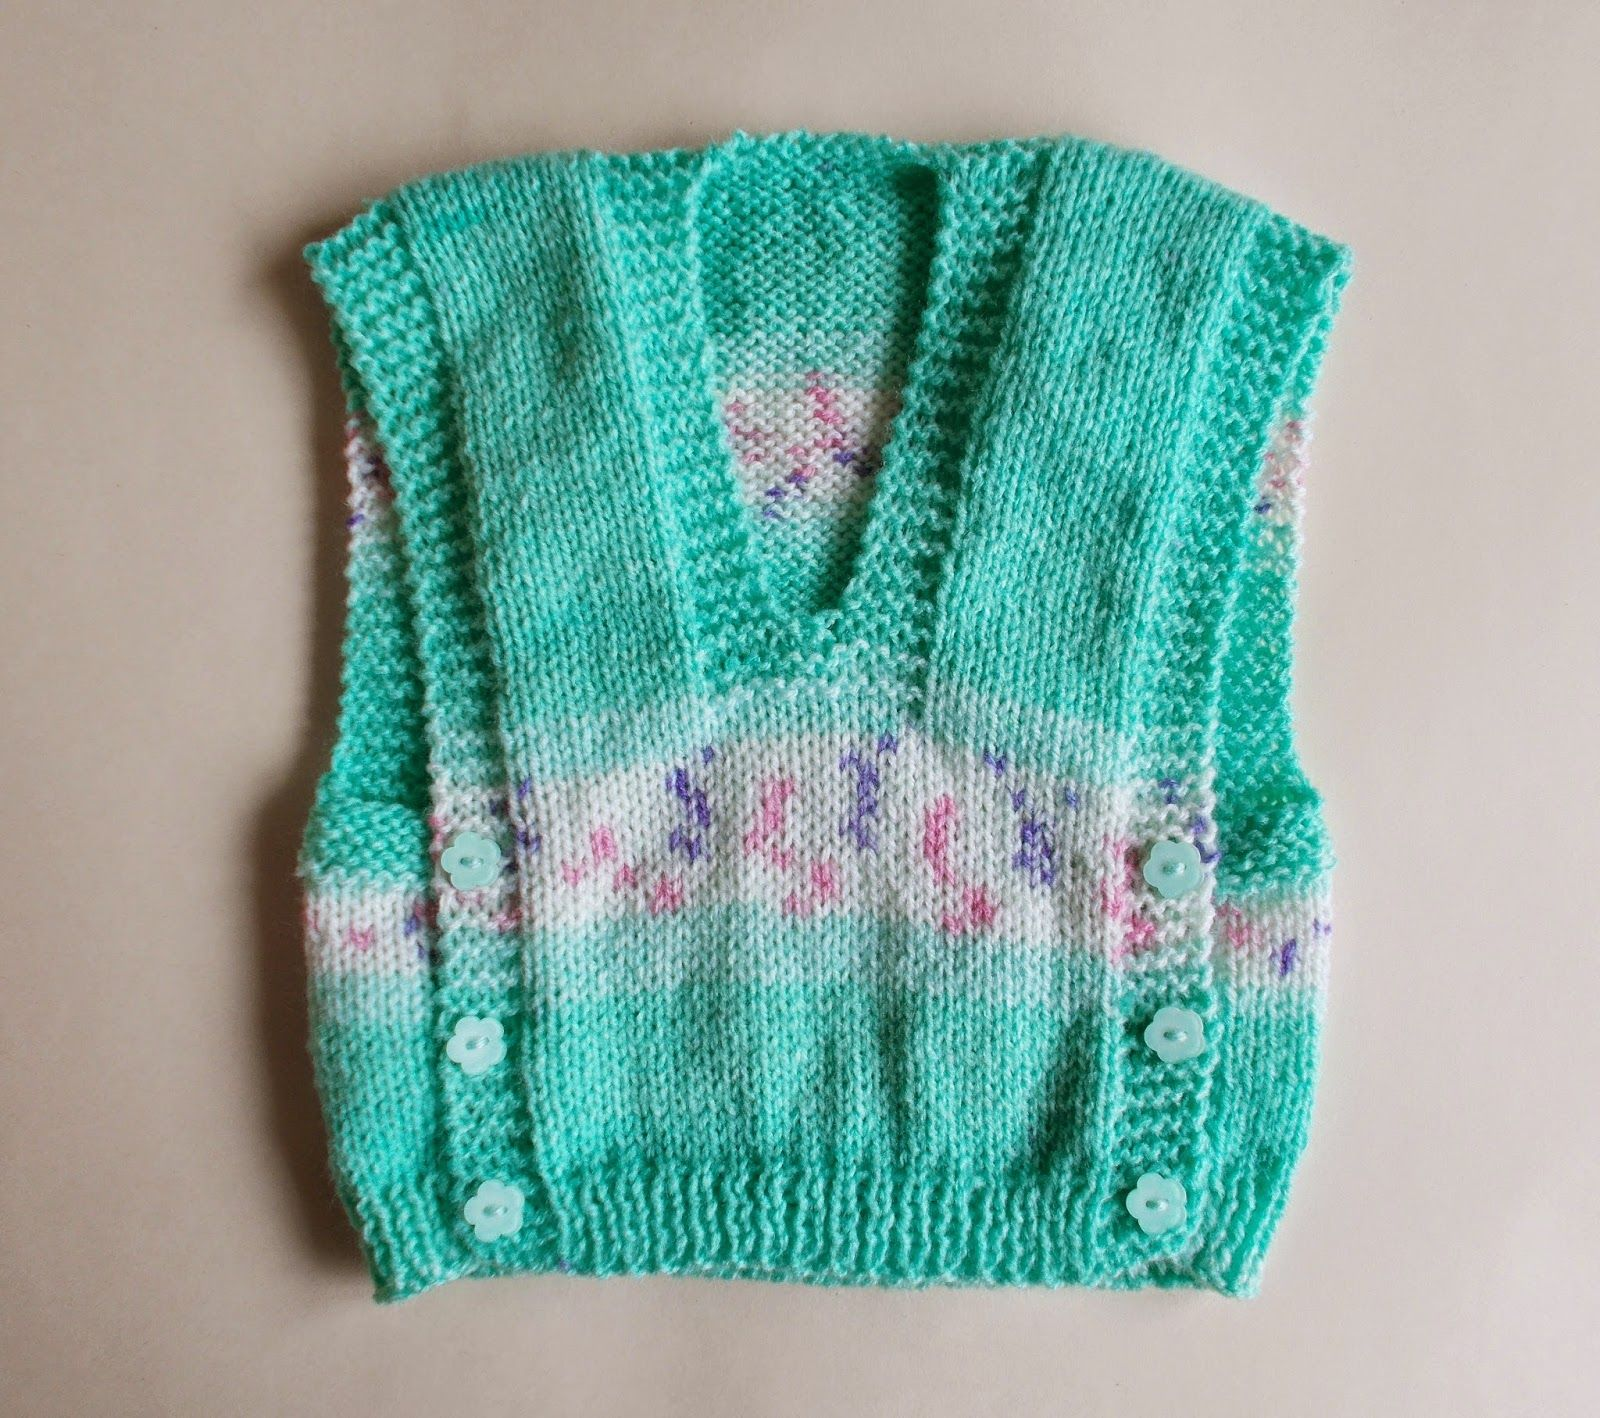 marianna's lazy daisy days: Melika Lacy Baby Vest Top with side buttons